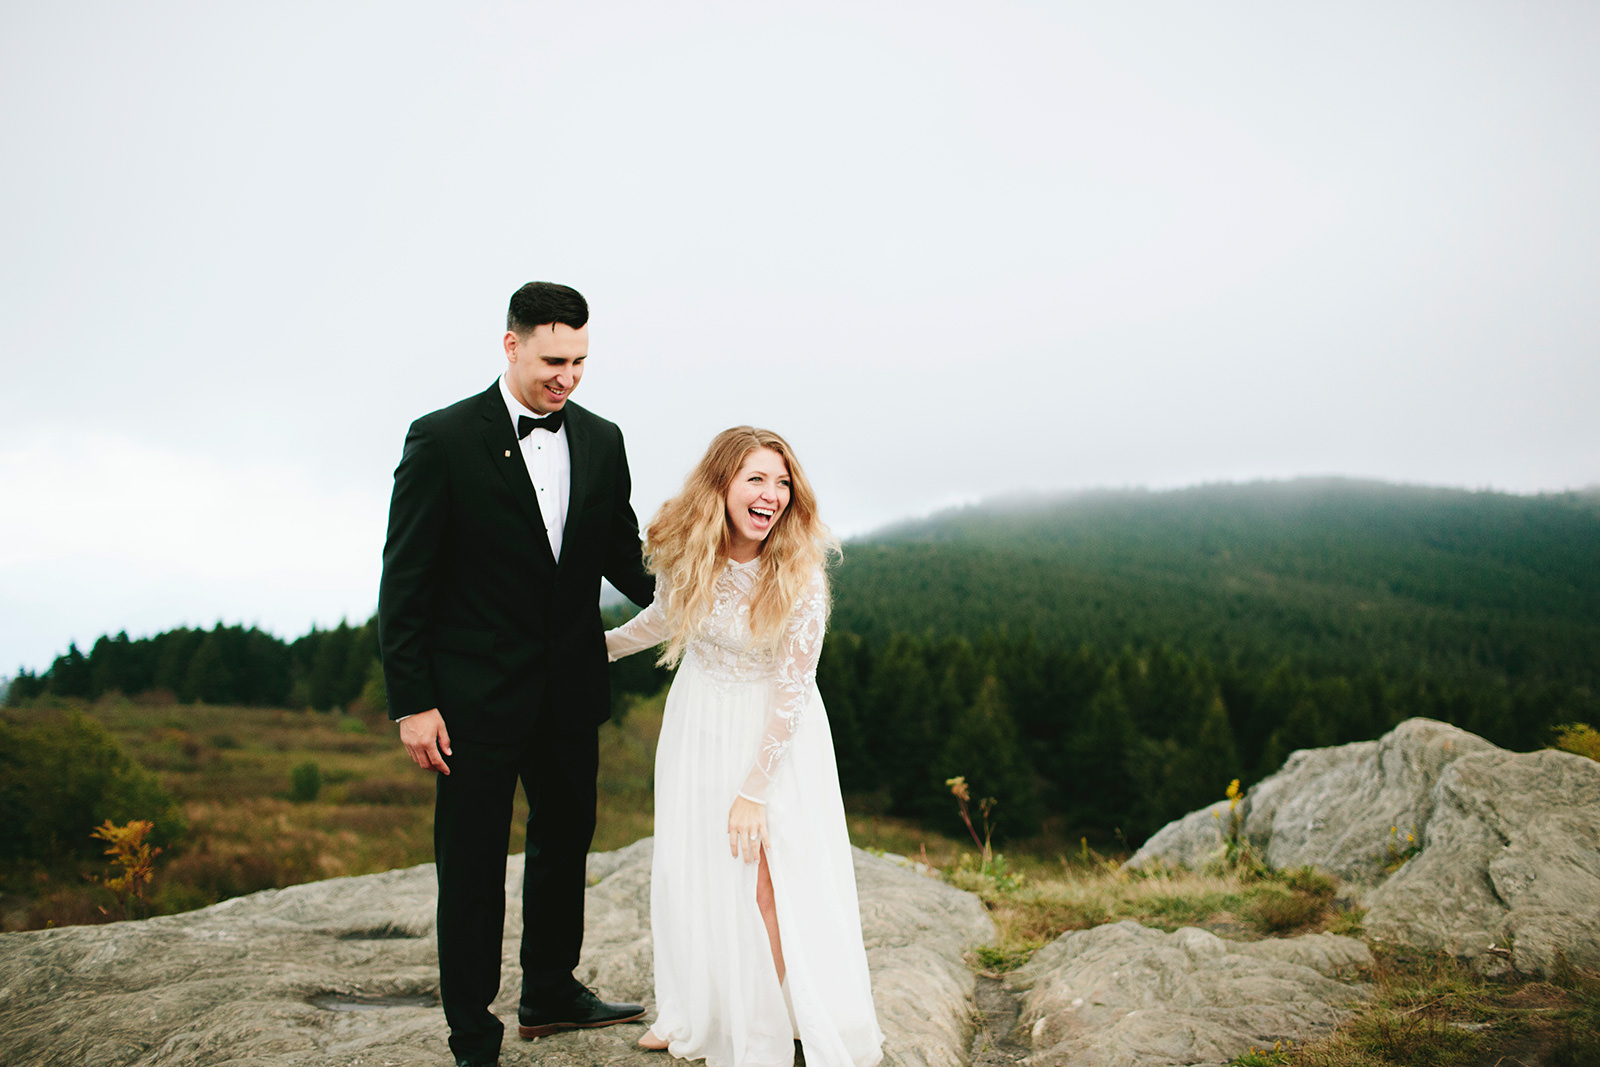 elopement locations asheville